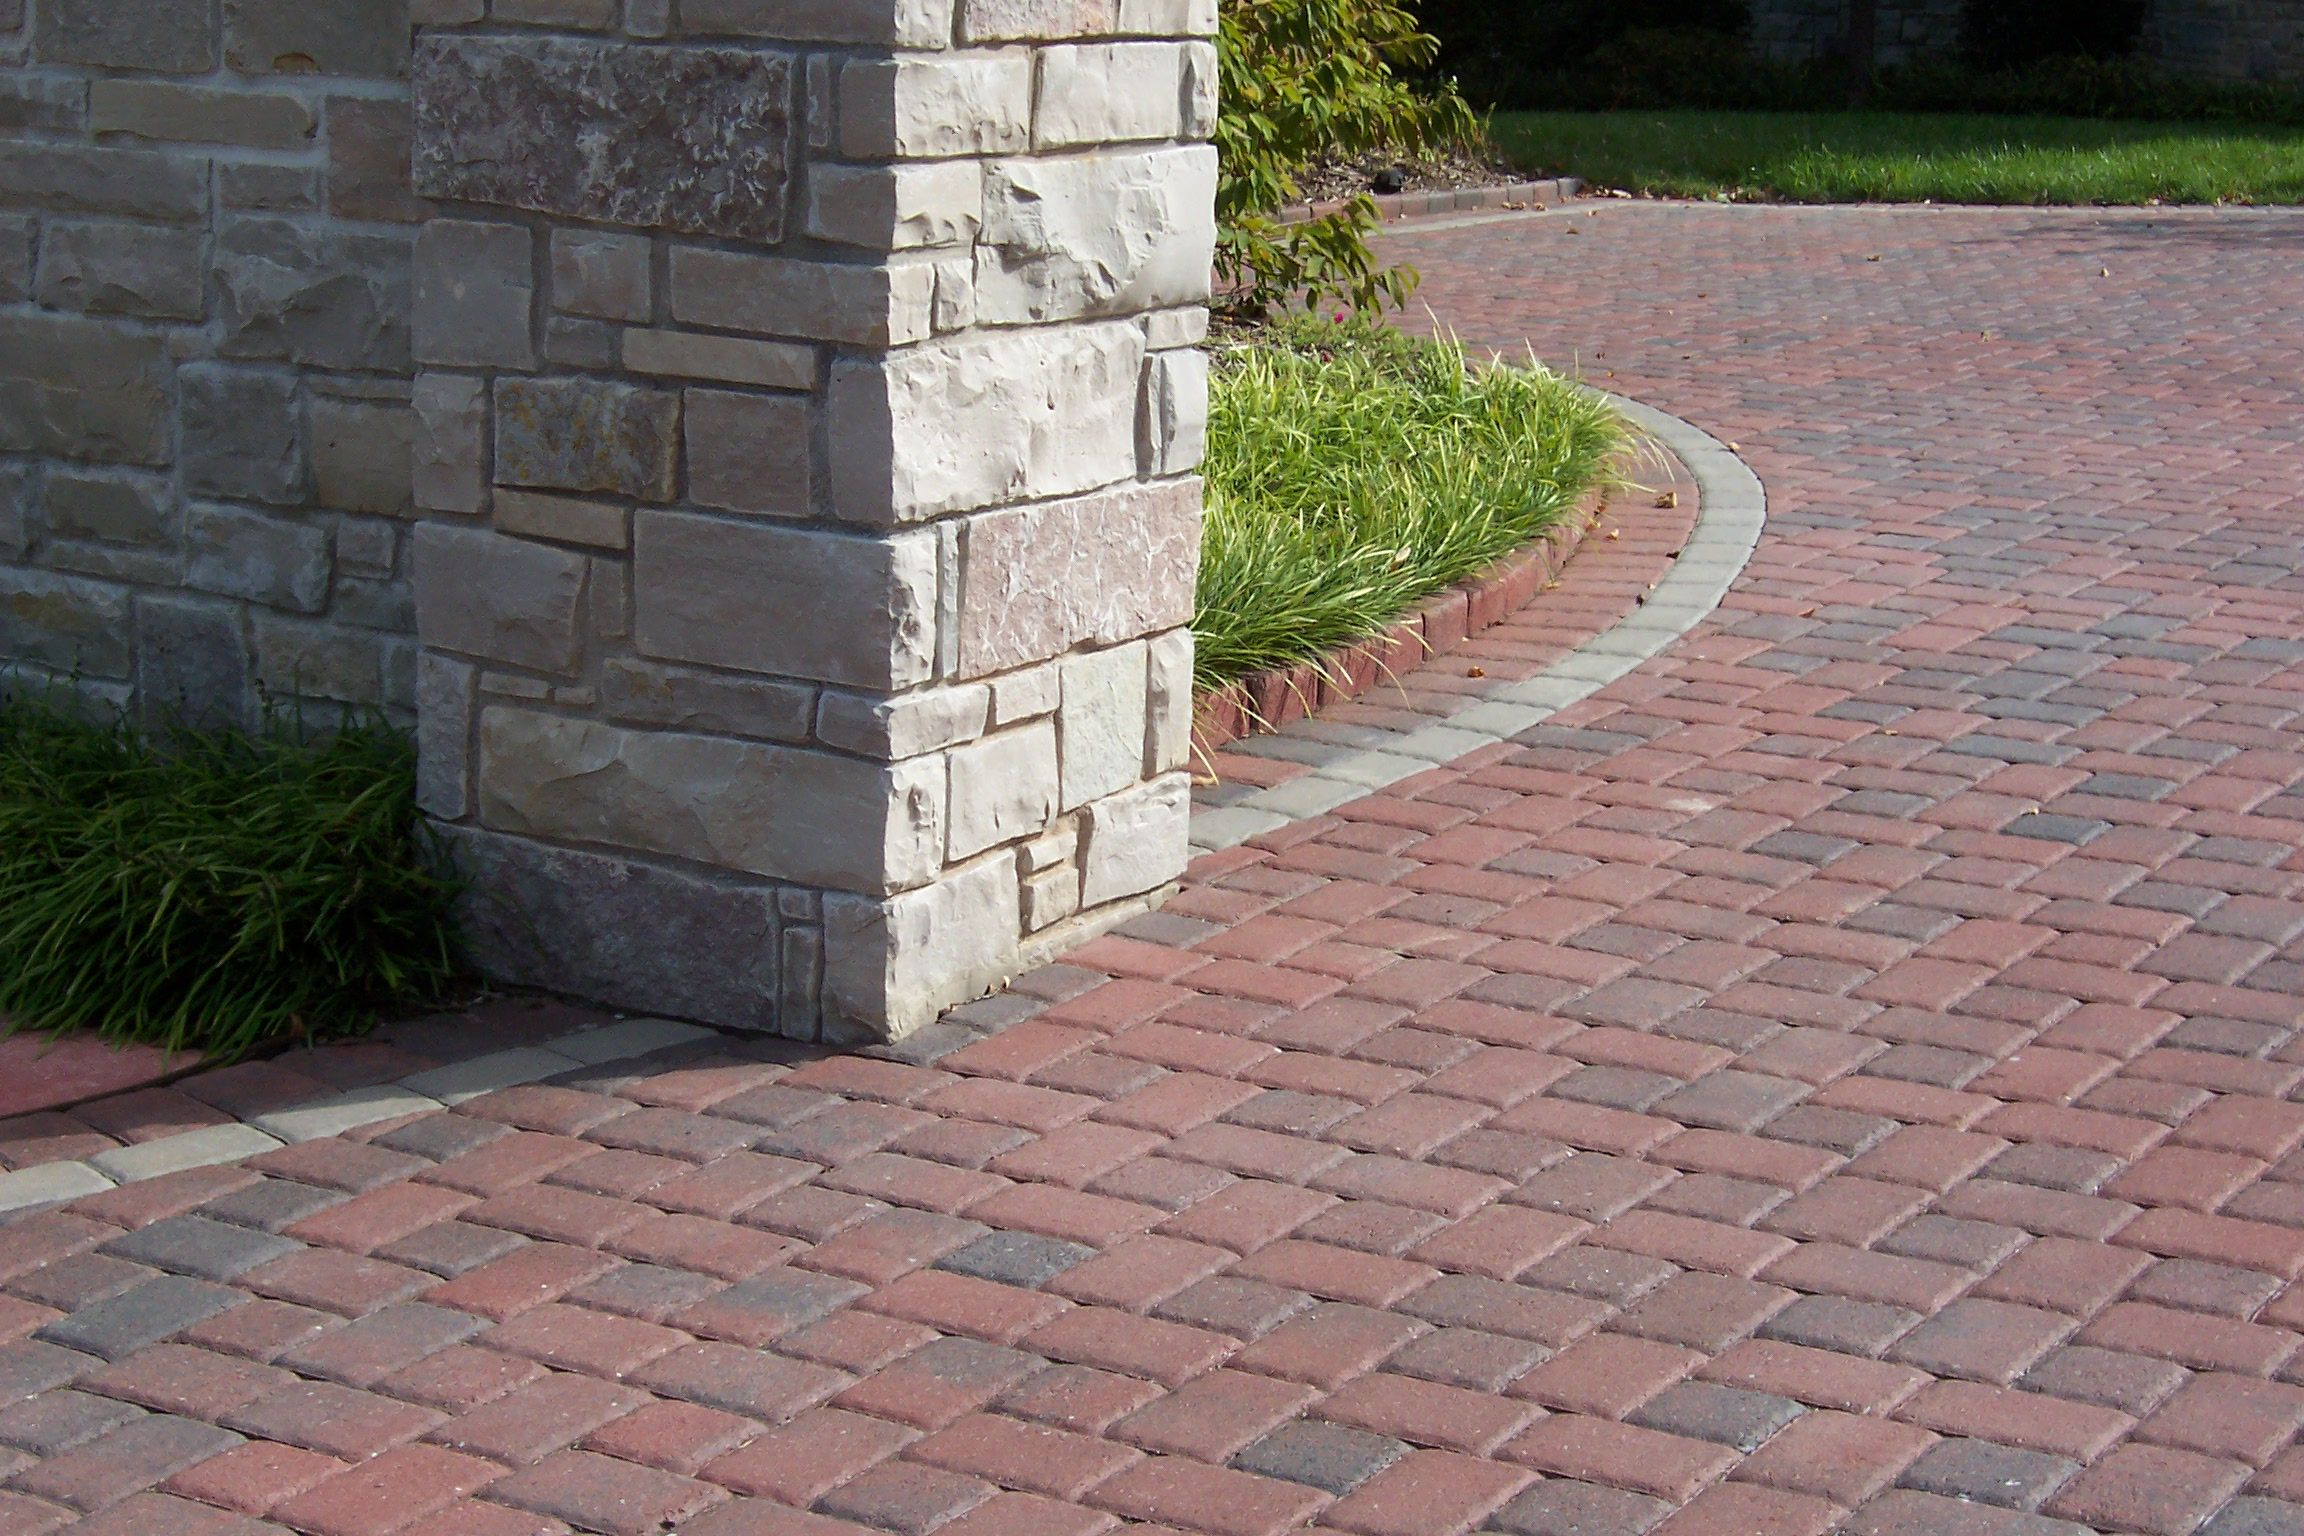 Interlocking Brick Pavers Romanstone Interlocking Concrete Pavers.cobble 6X6 And 6X9